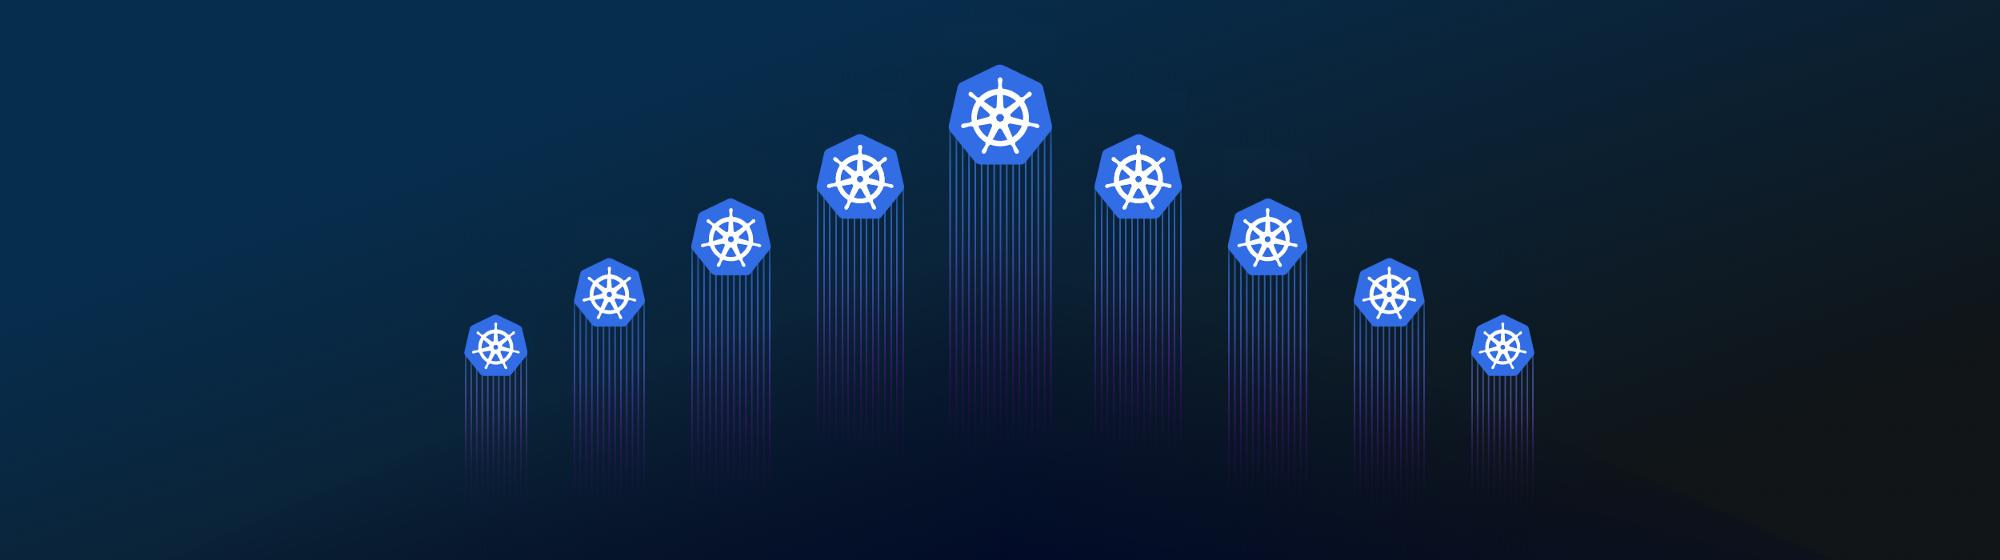 Migrating to Kubernetes with zero downtime